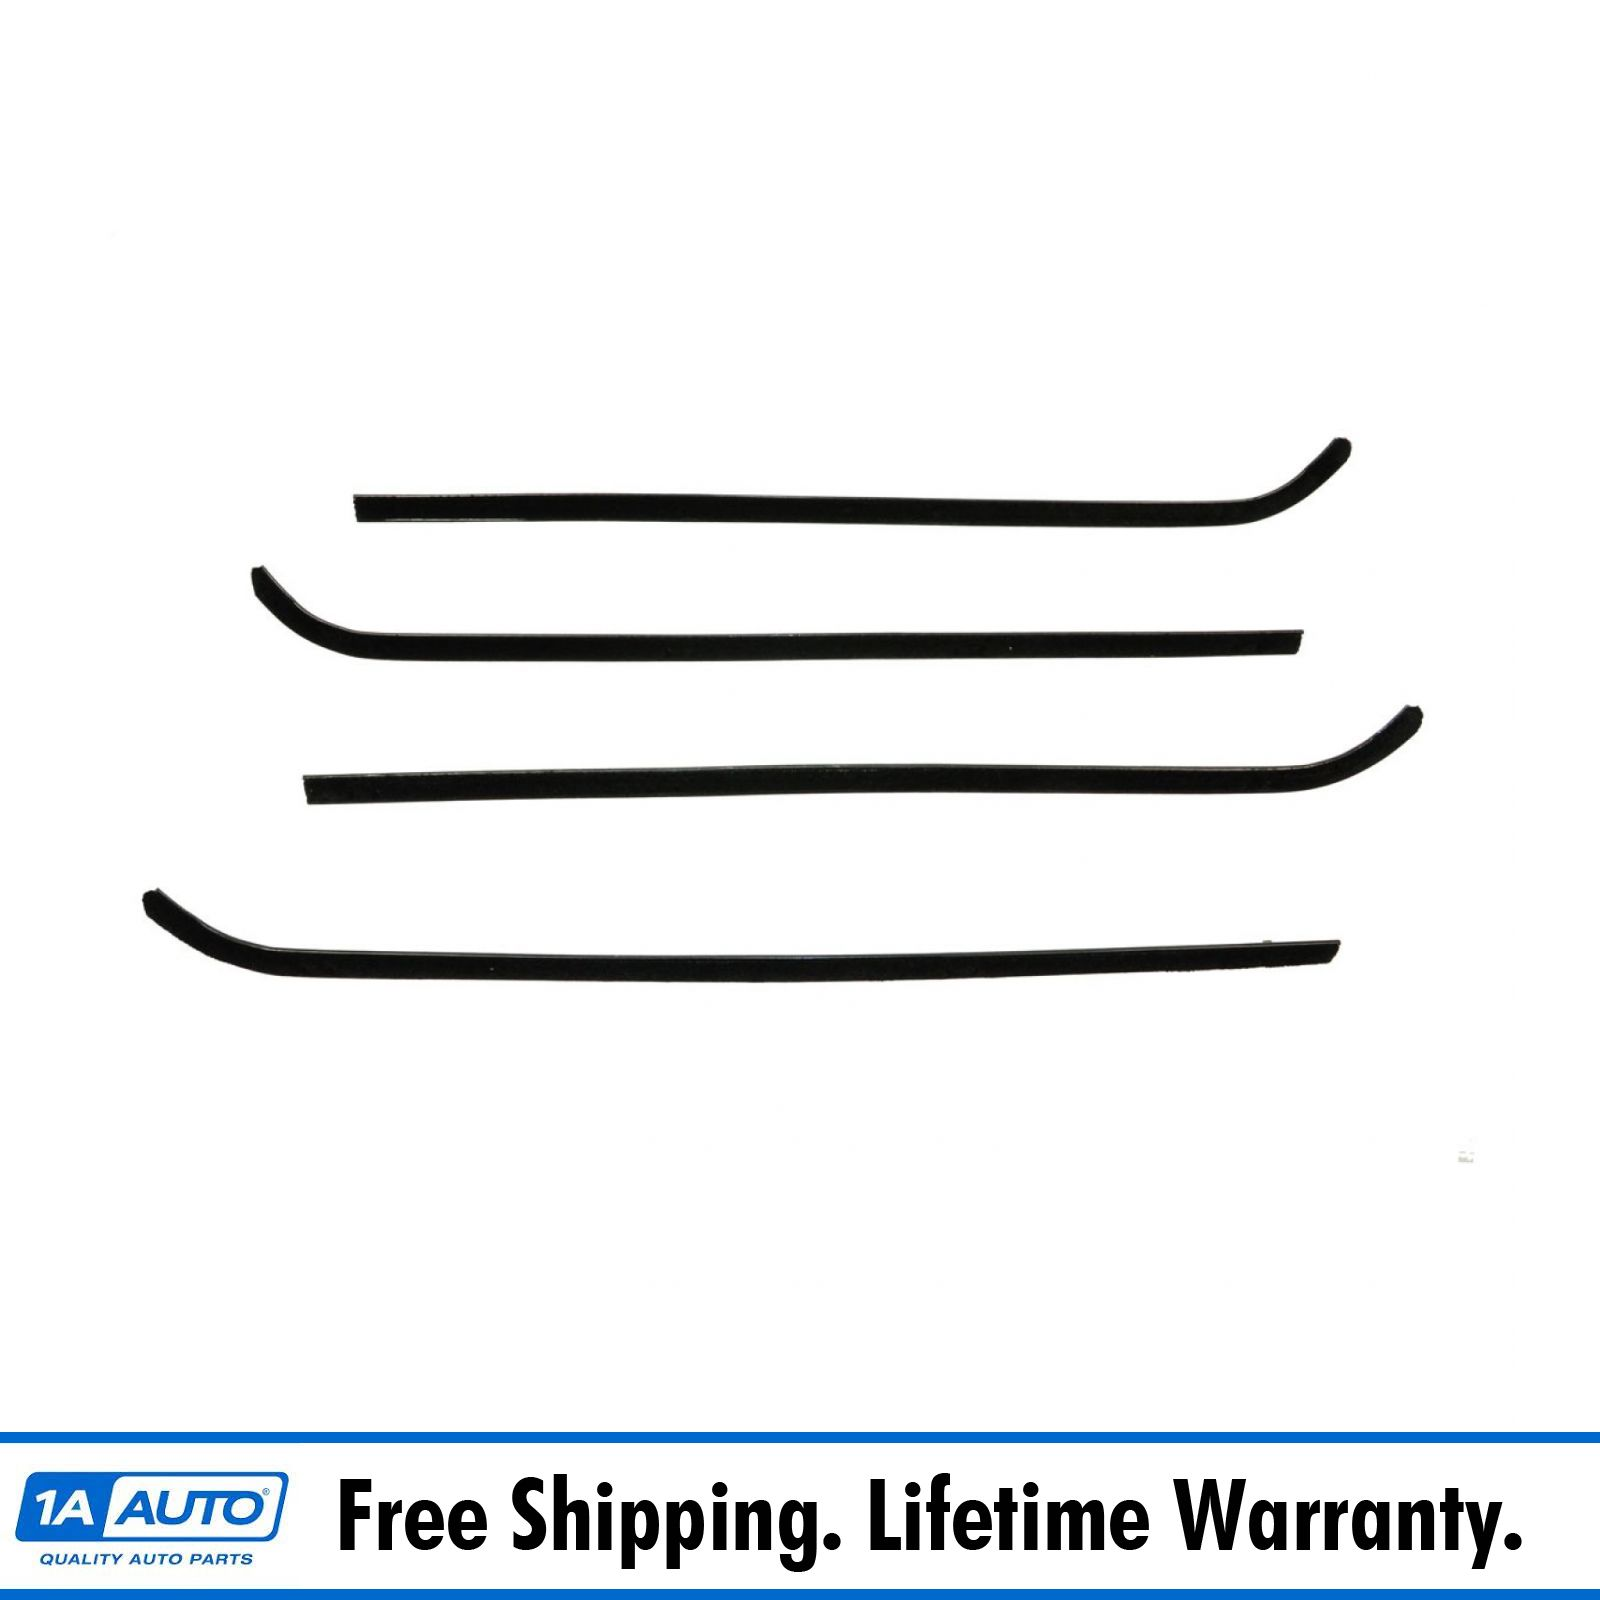 New 8-piece Fairchild Weatherstrip Kit FOR 1964-66 CHEVROLET CHEVY /& GMC TRUCK